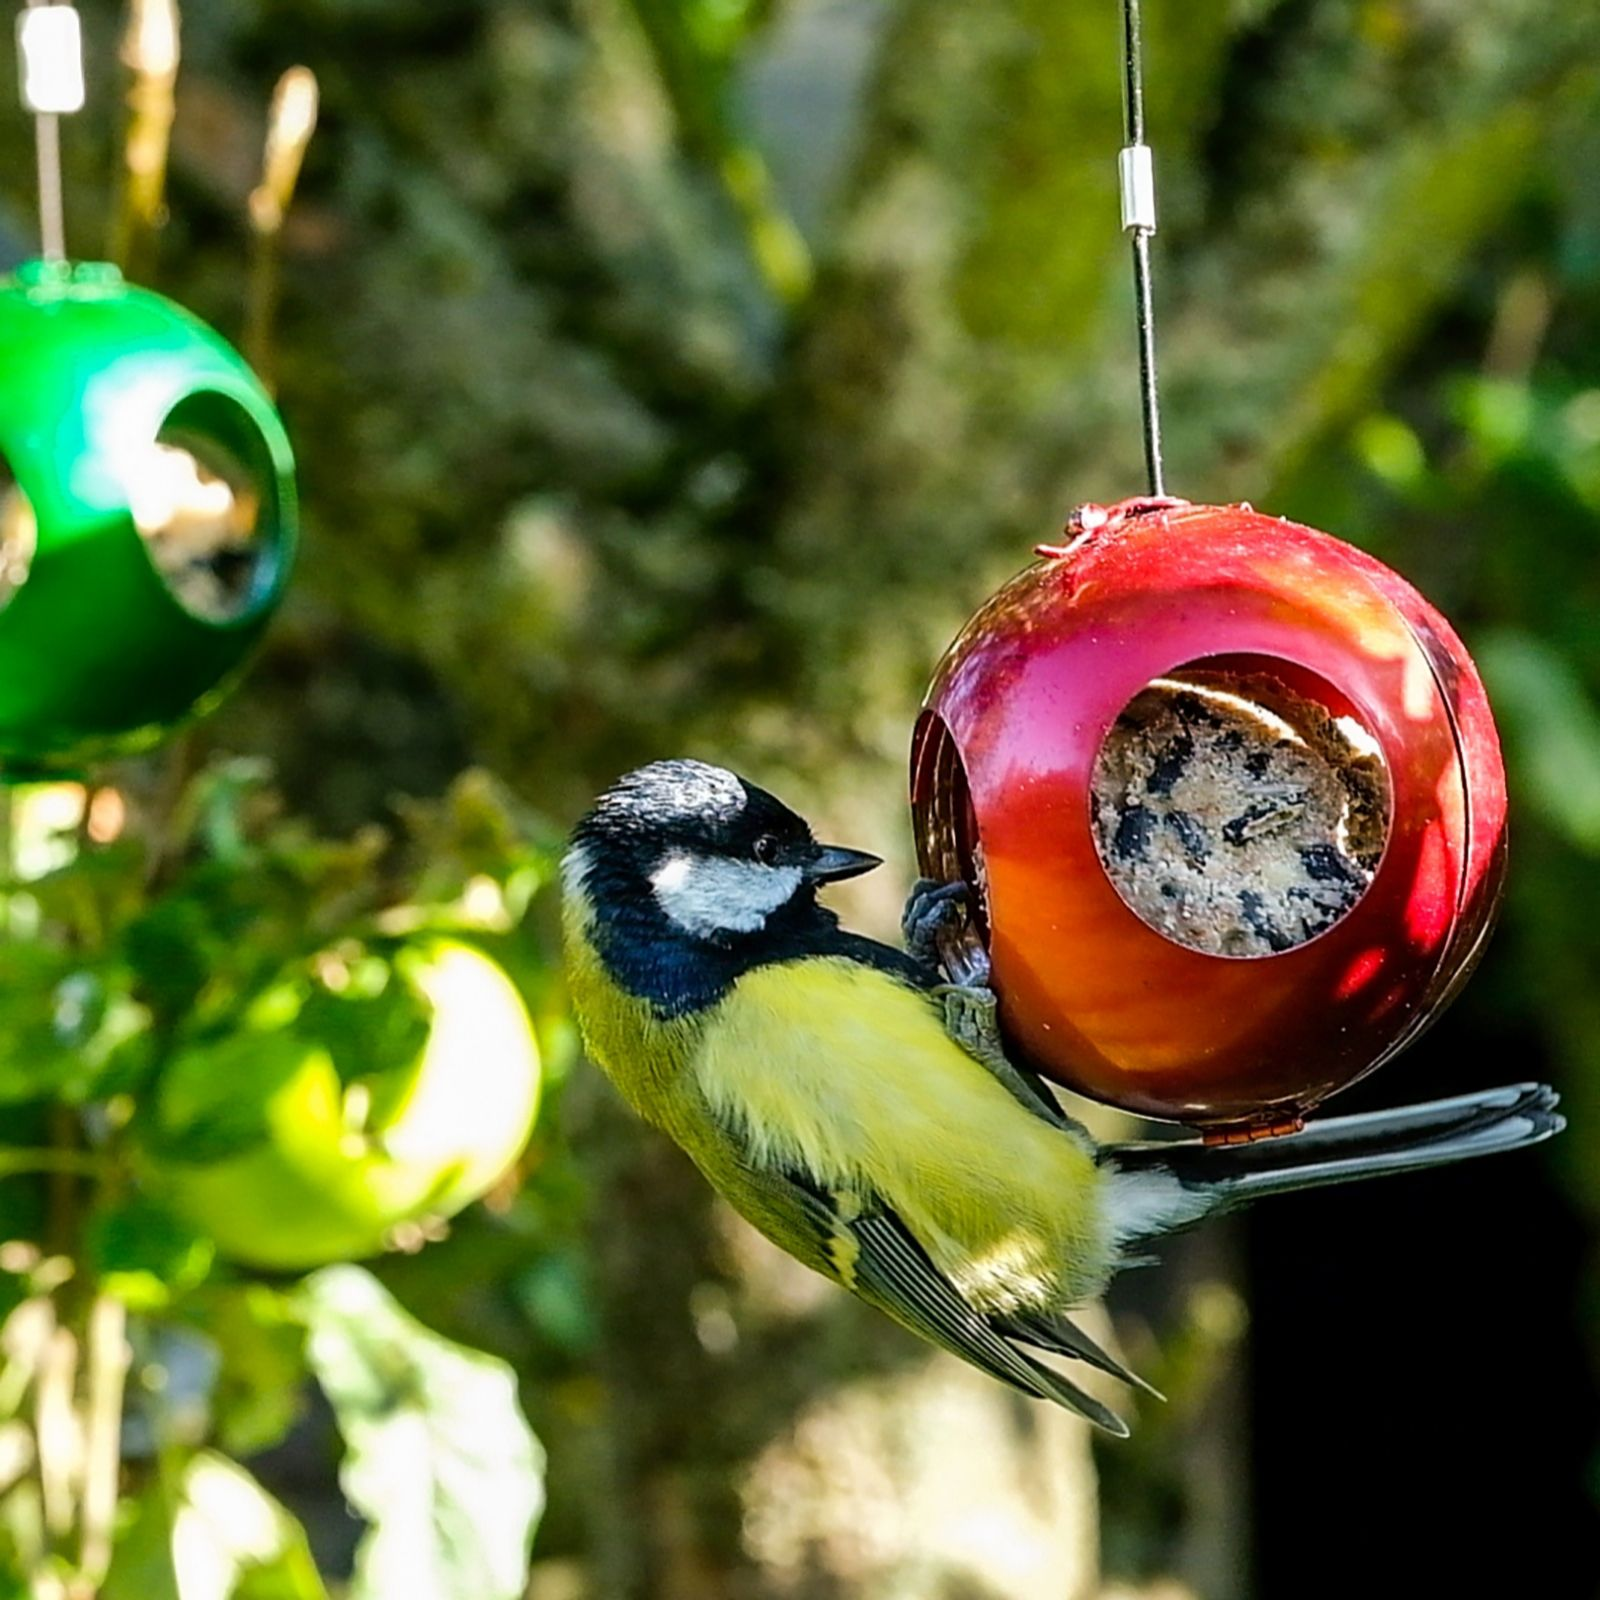 Bird baubles with fatballs